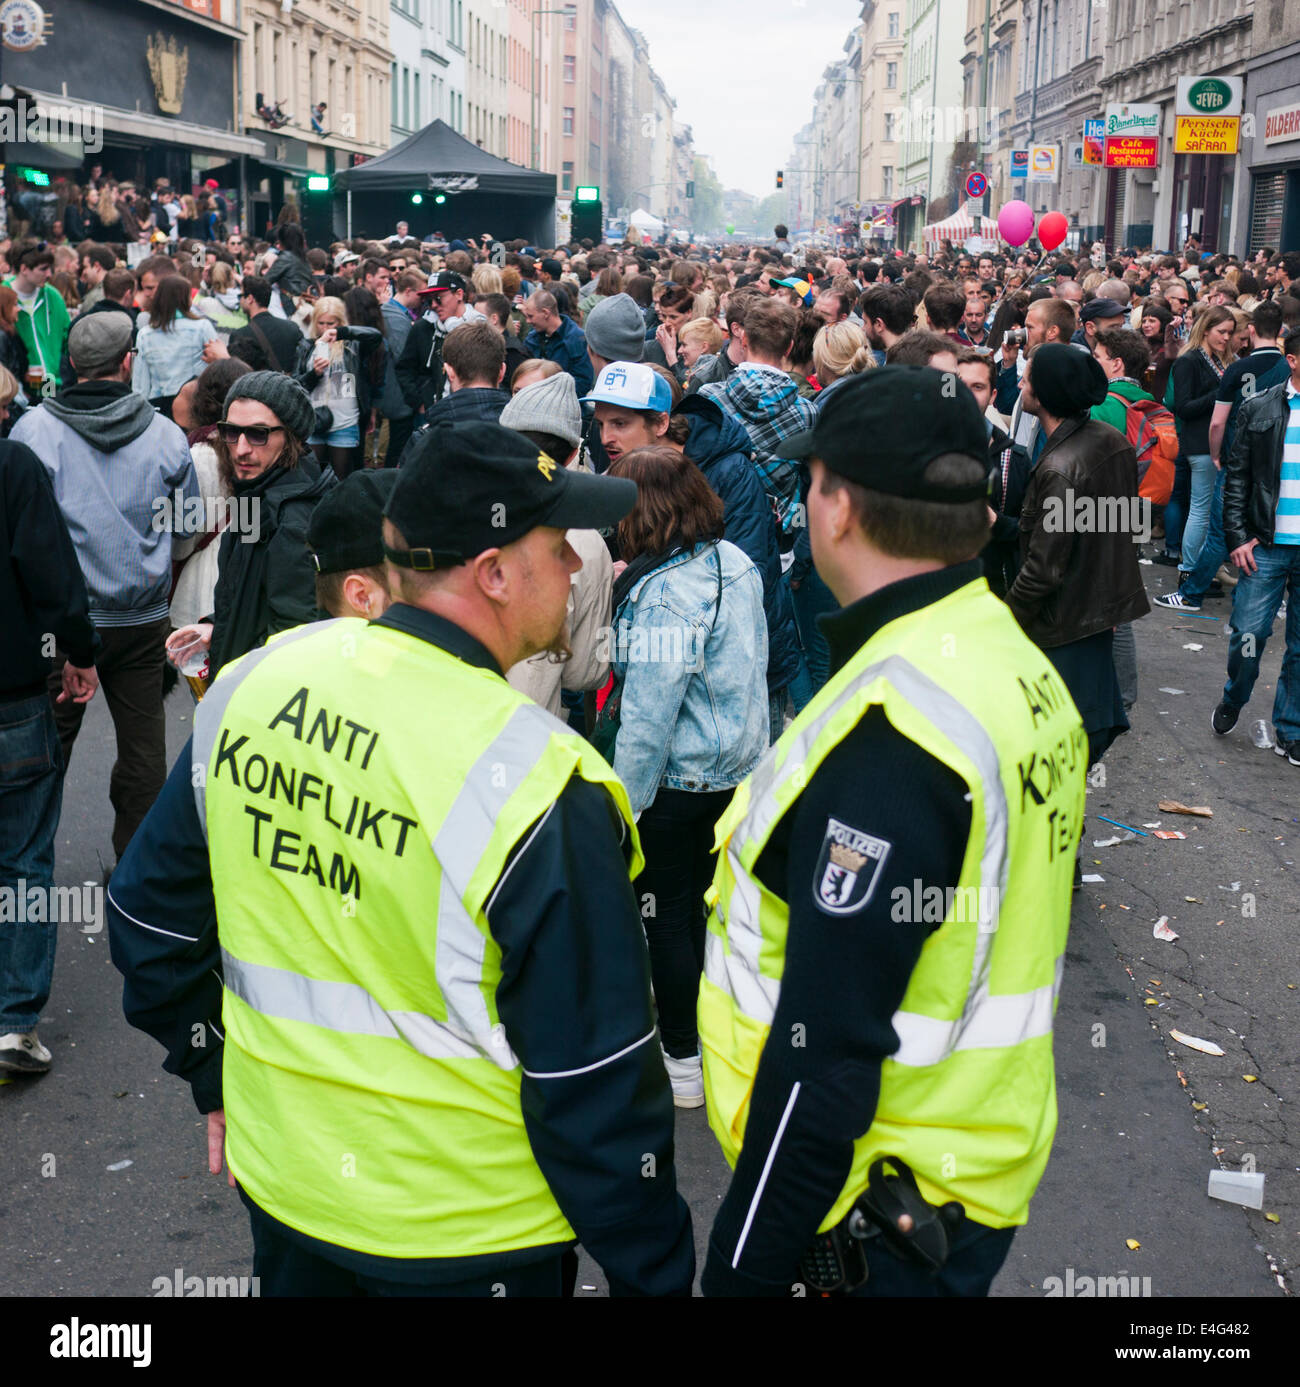 Anti Konflikt Team - Stock Image